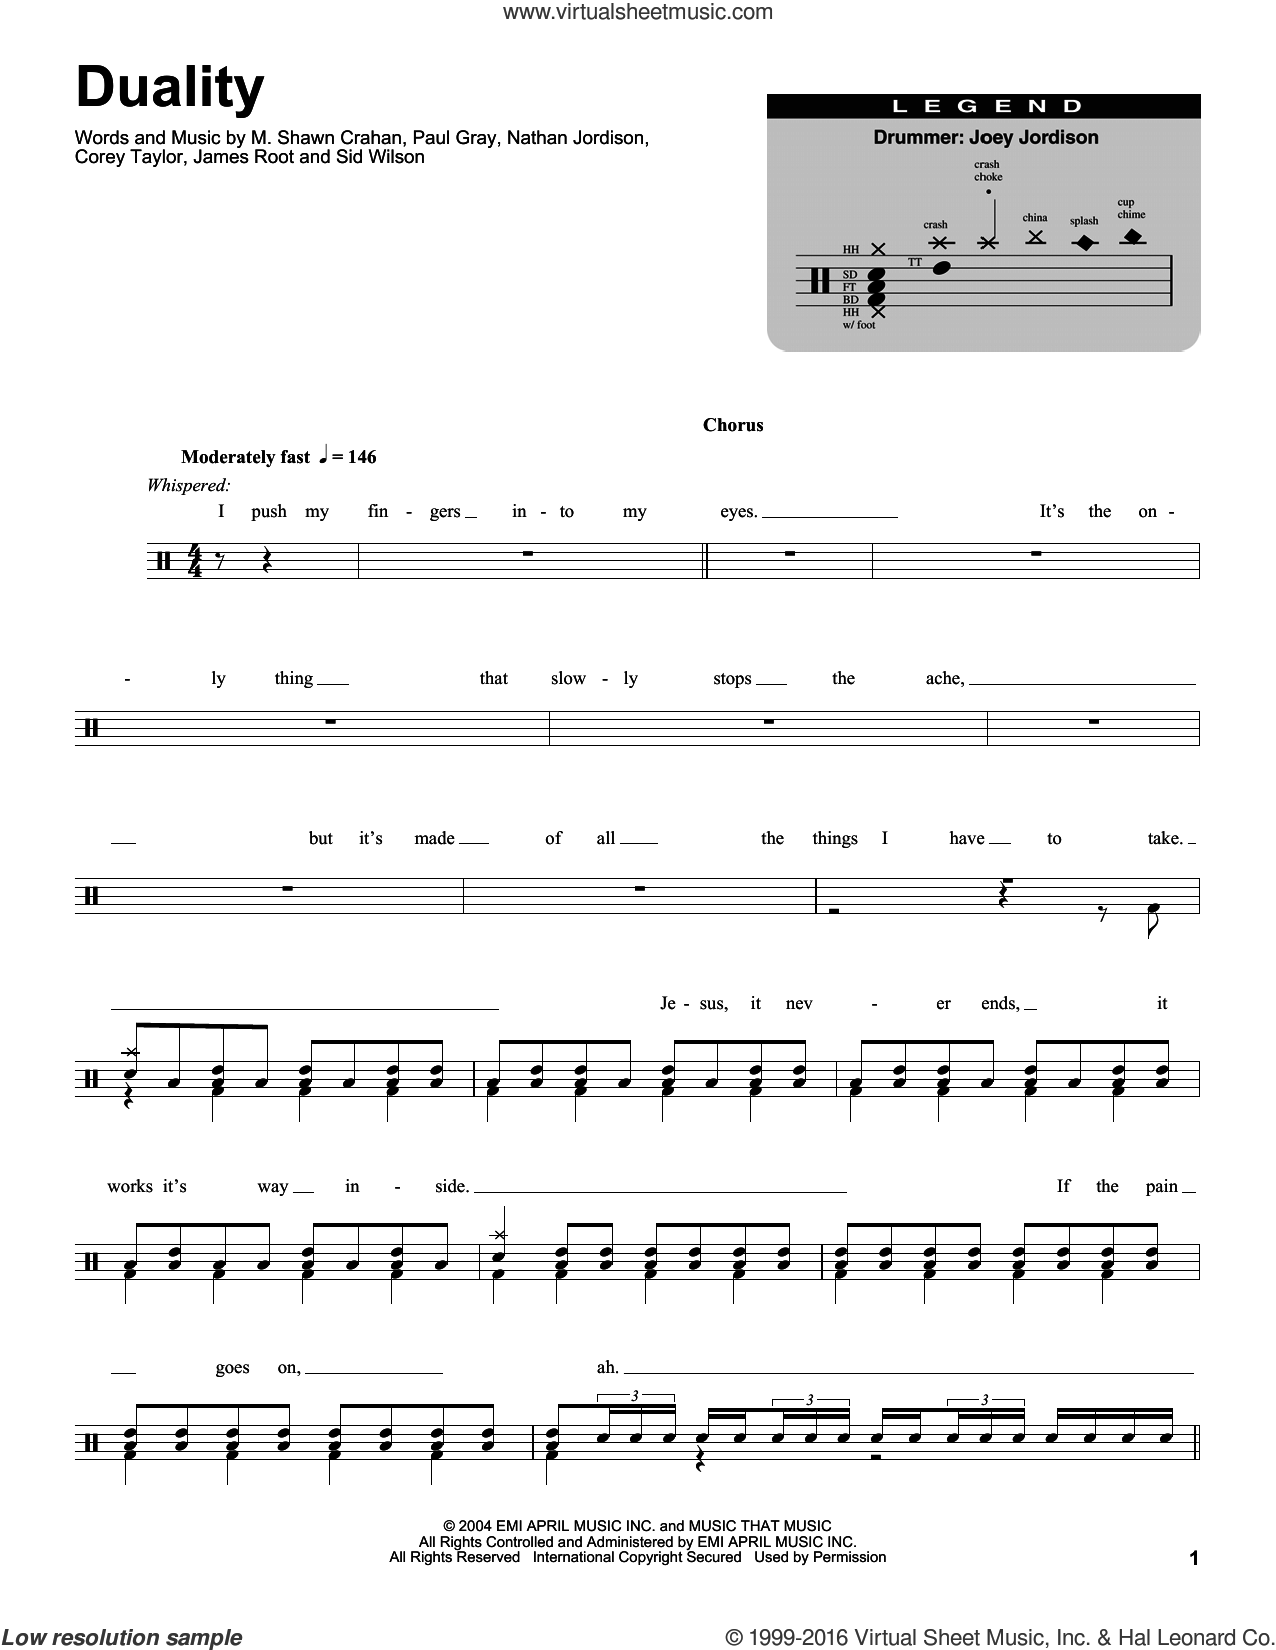 Duality sheet music for drums by Slipknot, Corey Taylor, James Root, M. Shawn Crahan, Nathan Jordison, Paul Gray and Sid Wilson, intermediate skill level